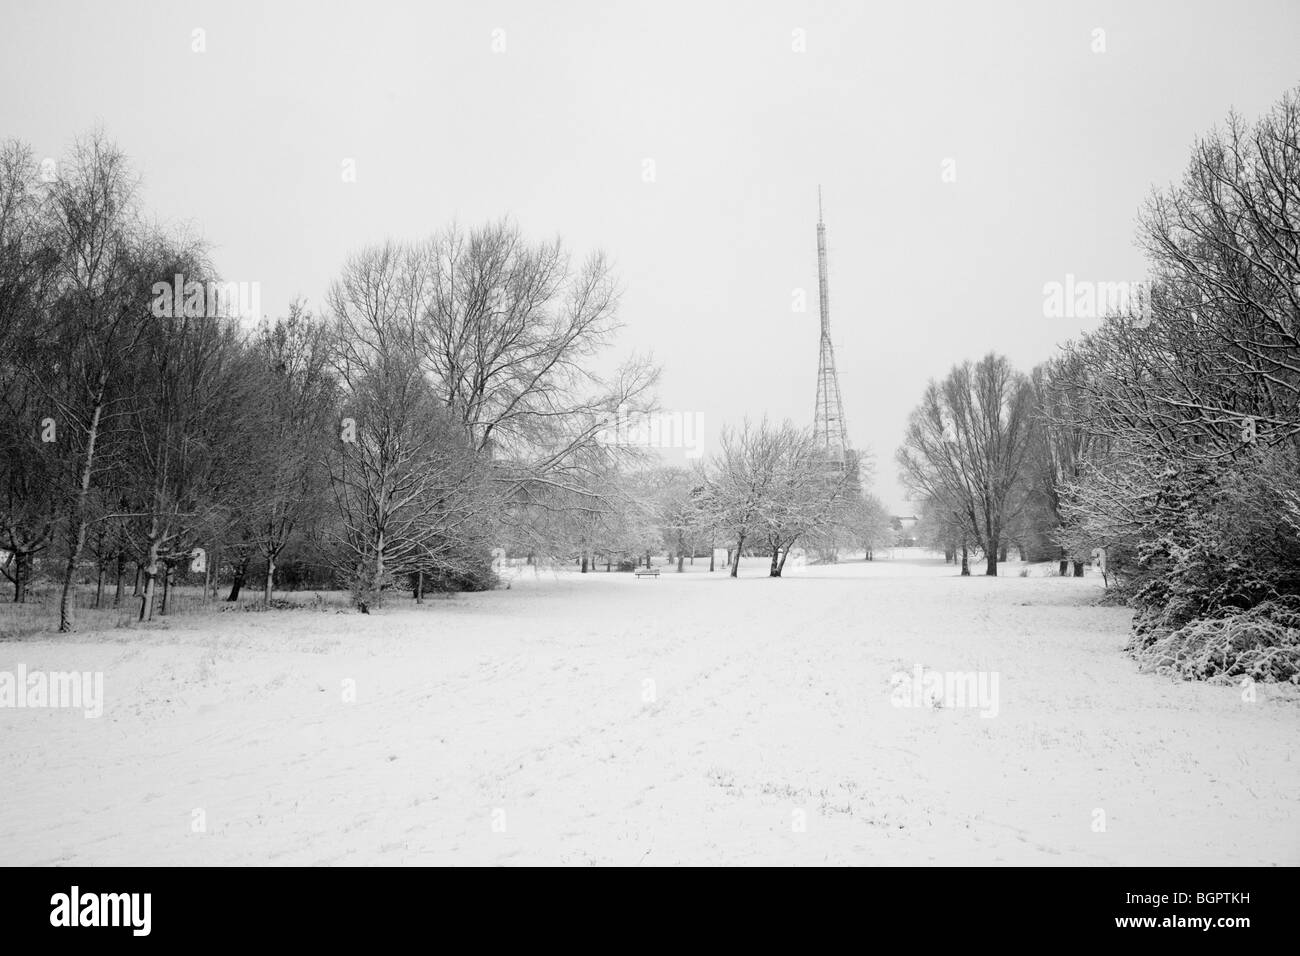 Alexandra Palace radio mast in the snow during the record-breaking cold spell in London, January 2010 - Stock Image